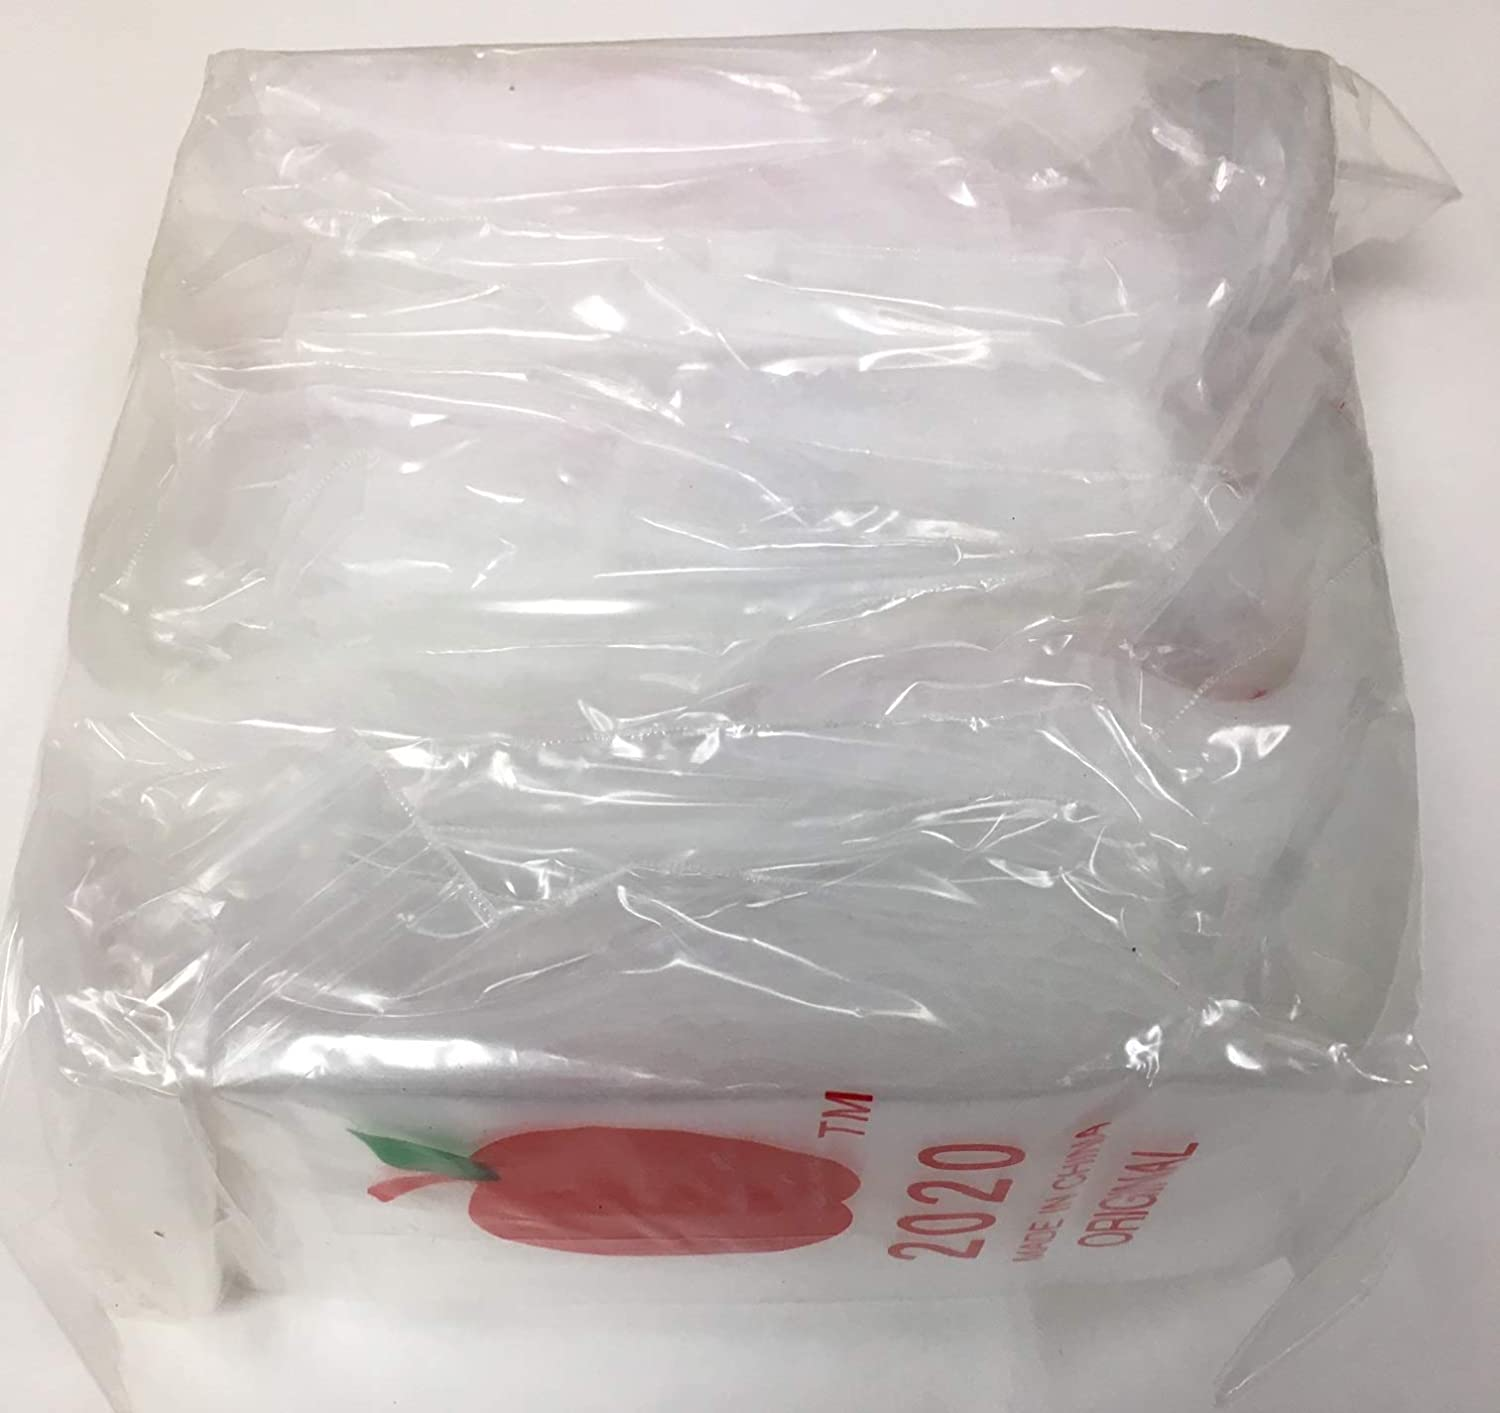 "1,000 2x2 2mil Apple Brand Clear Resealable Bags 2 2"" X 1000 2020 Baggies"